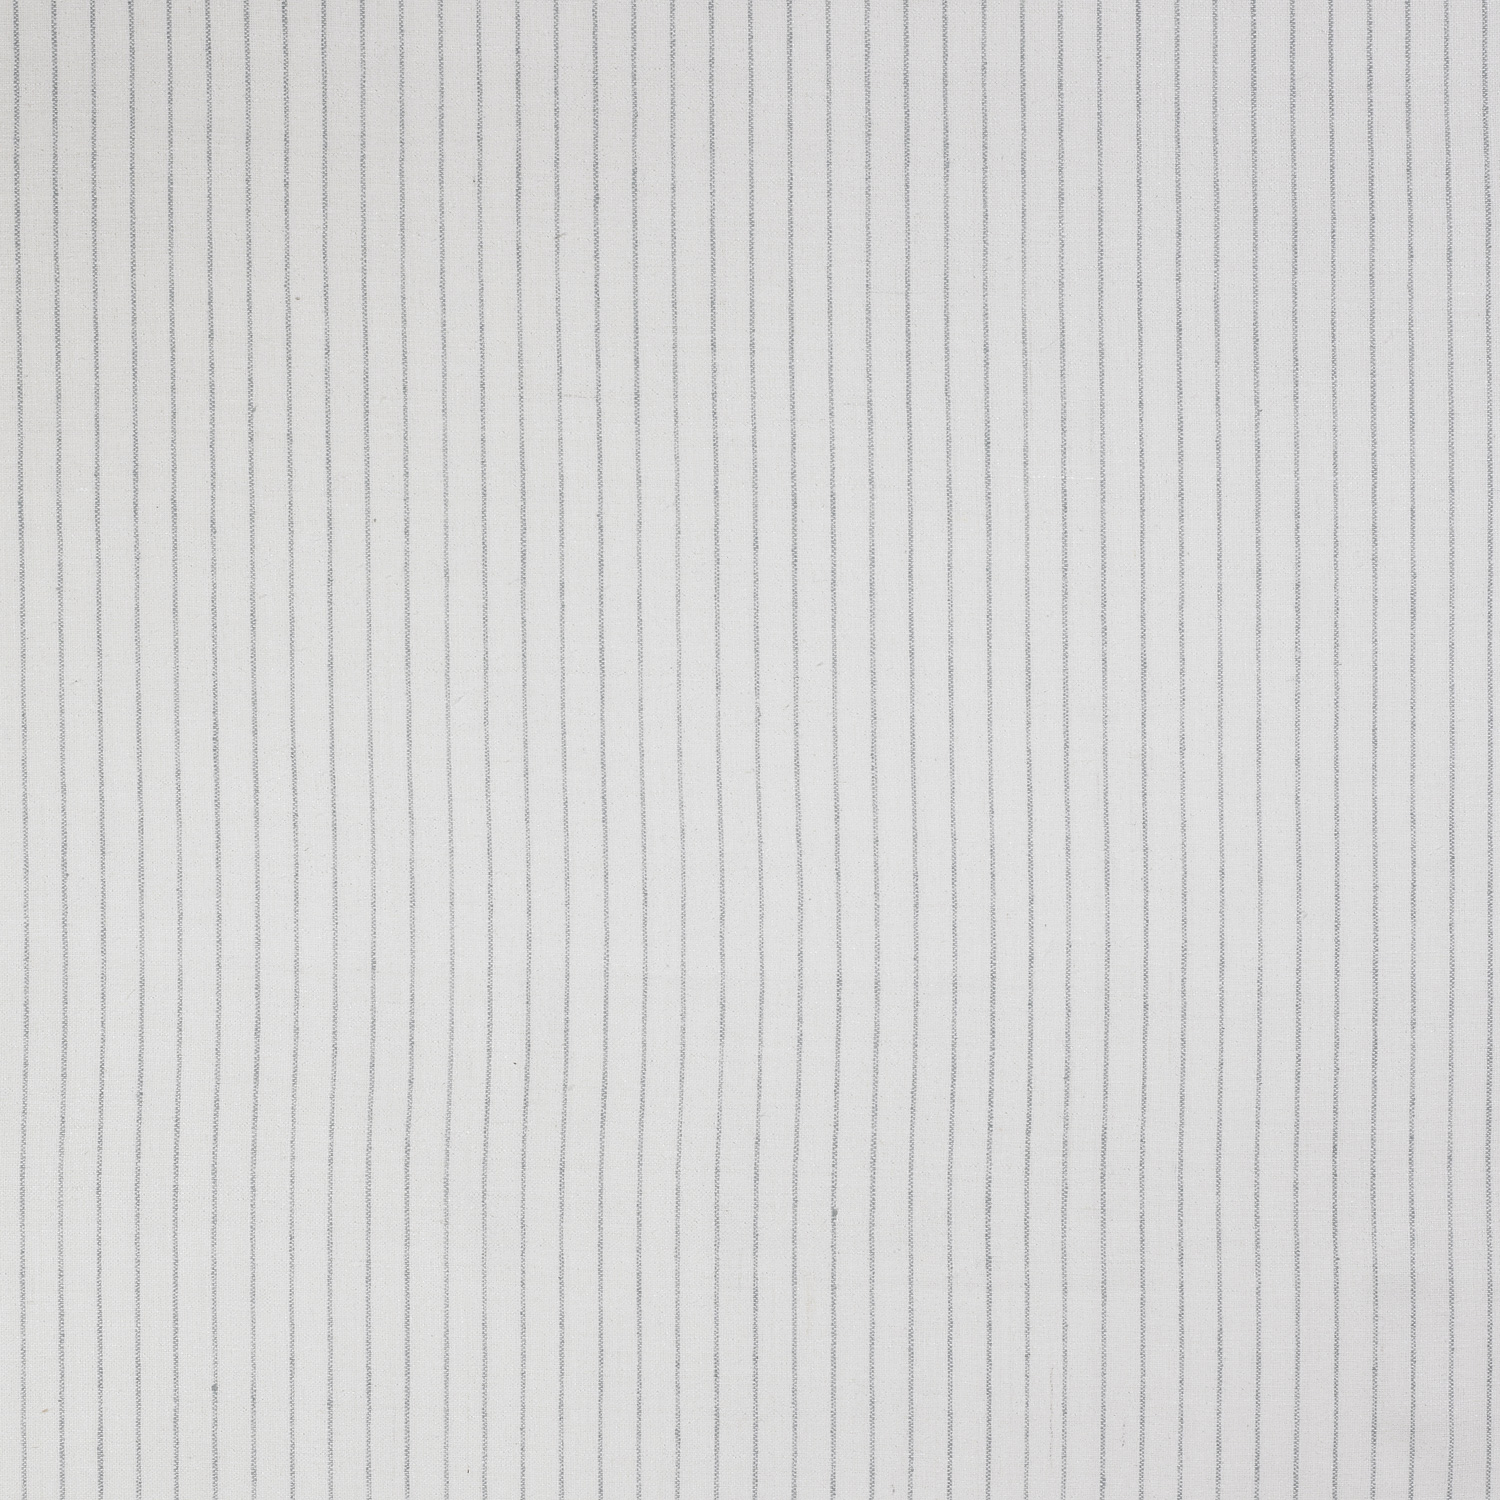 Gray Striped Wallpapers